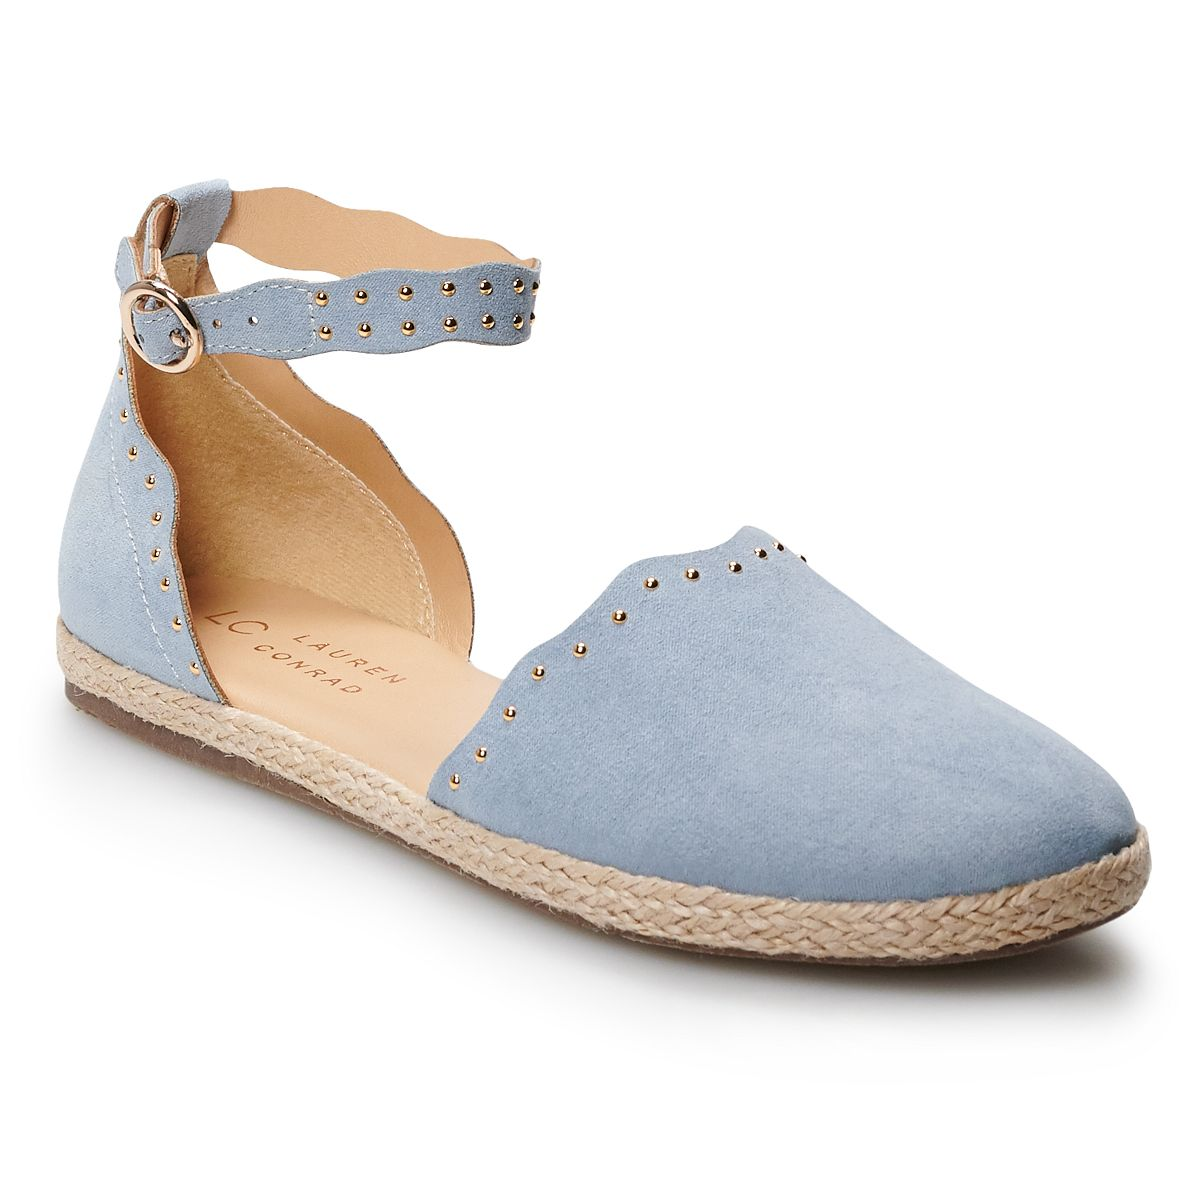 LC Lauren Conrad Feldspar Women's Flats- .99! You need to add these to your closet!